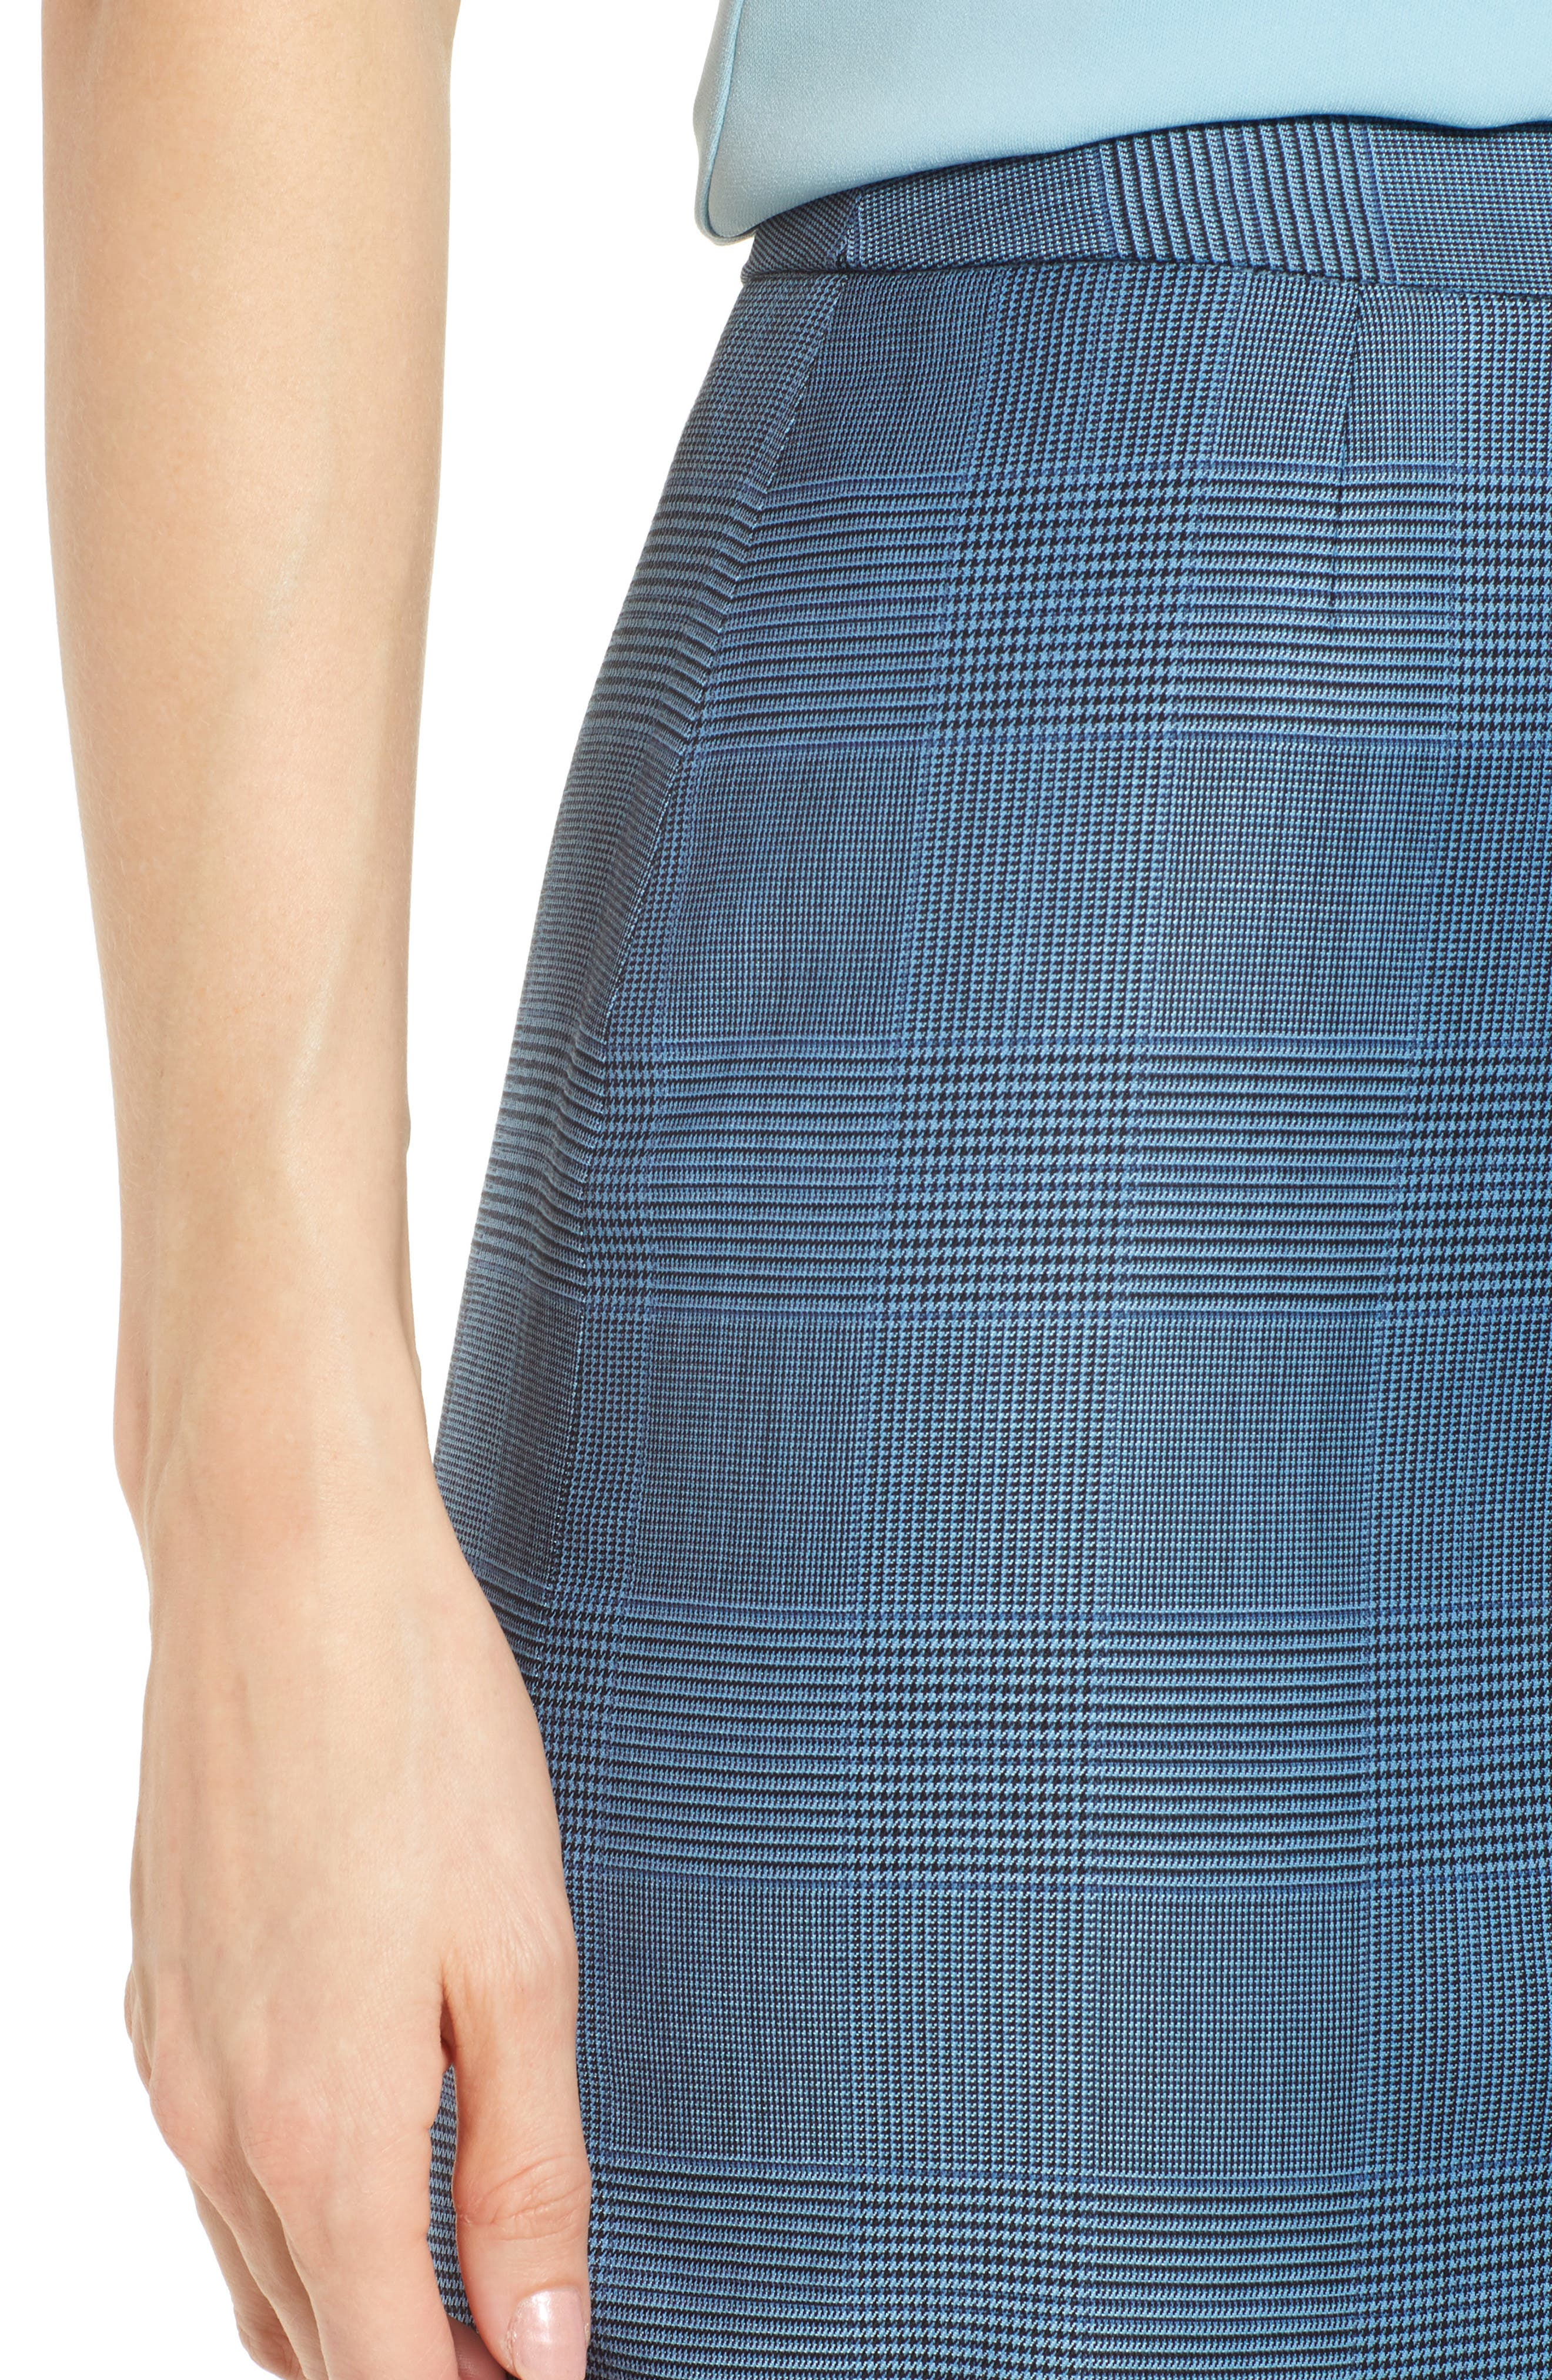 Vimena Glencheck Stretch Wool Pencil Skirt,                             Alternate thumbnail 4, color,